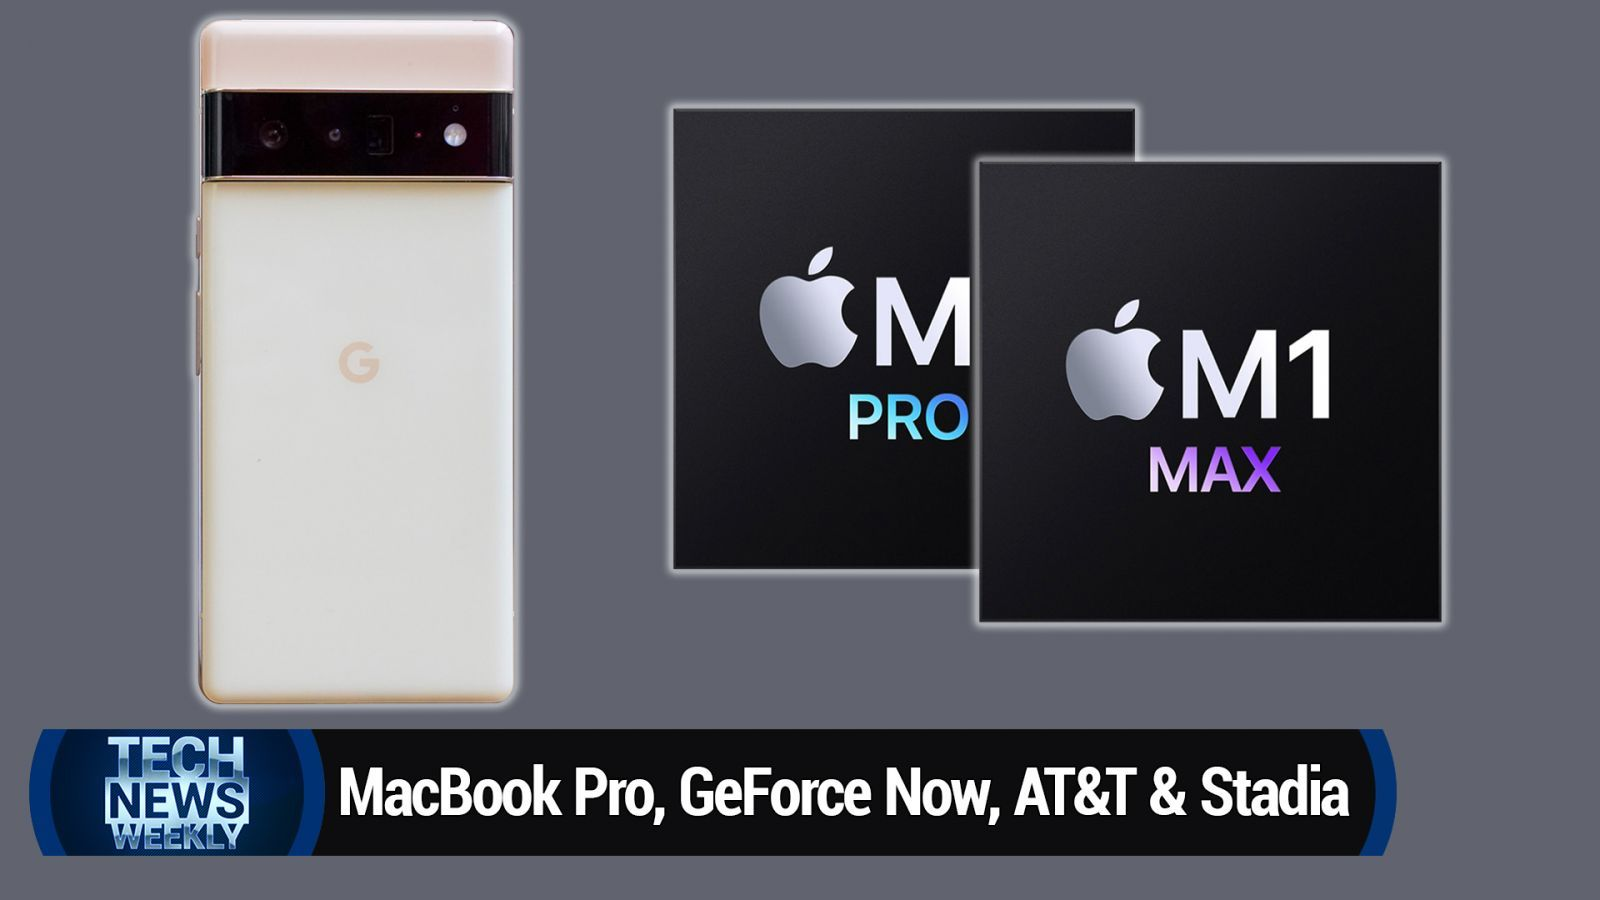 New MacBook Pro, AirPods 3, GeForce Now With RTX 3080, AT&T Uses Stadia